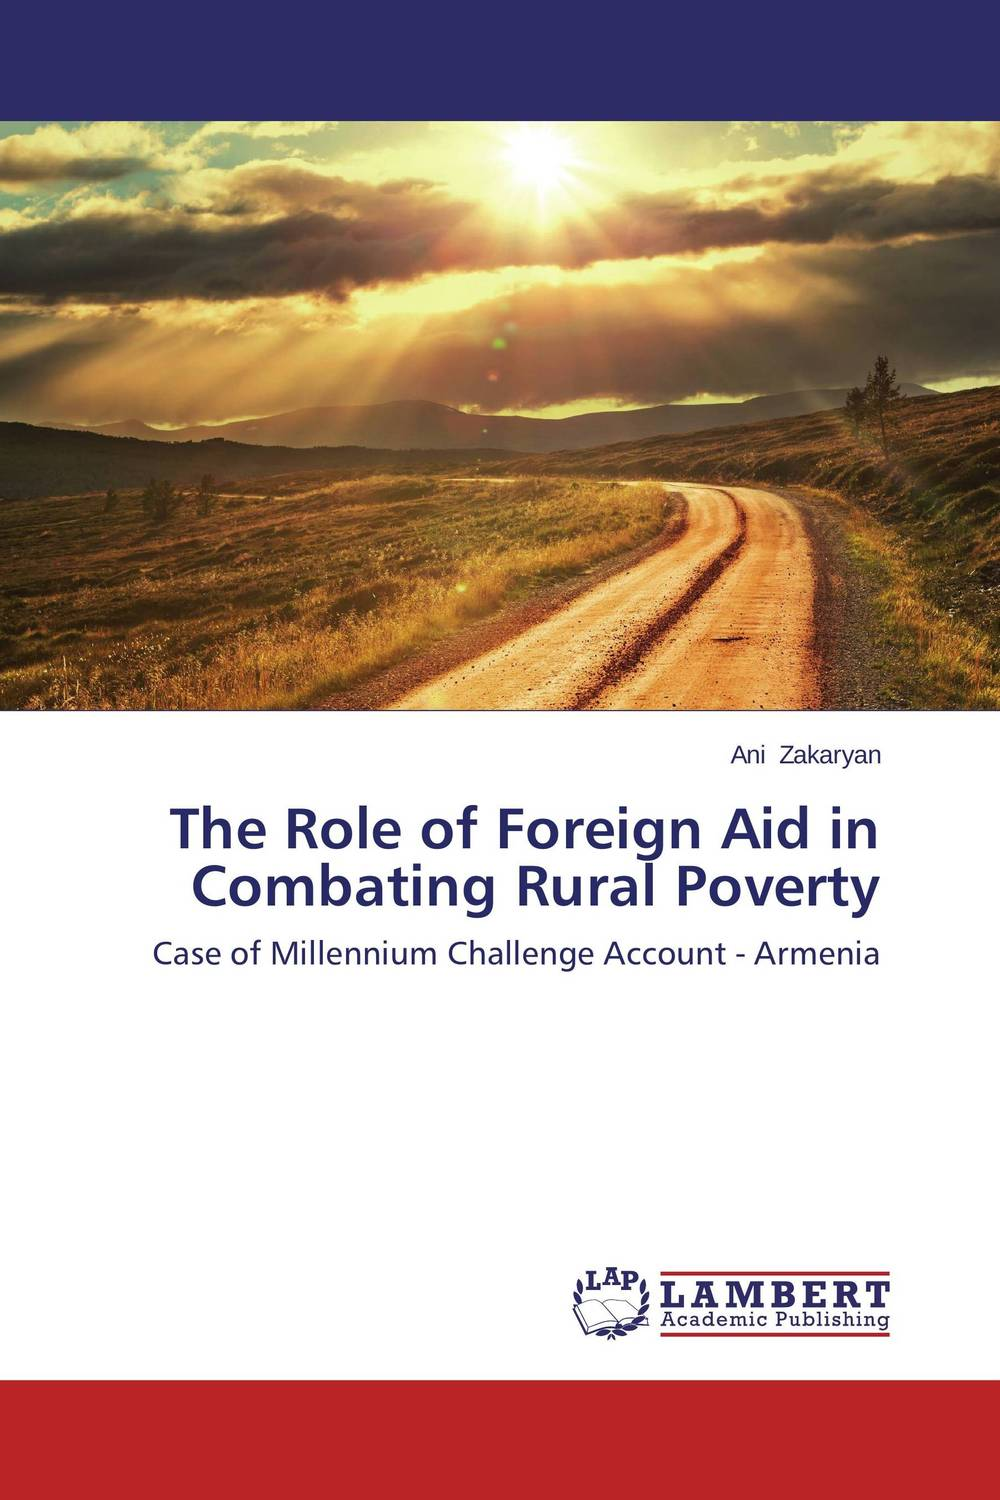 The Role of Foreign Aid in Combating Rural Poverty tinashe nyatoro the impact of aid dependence on social development